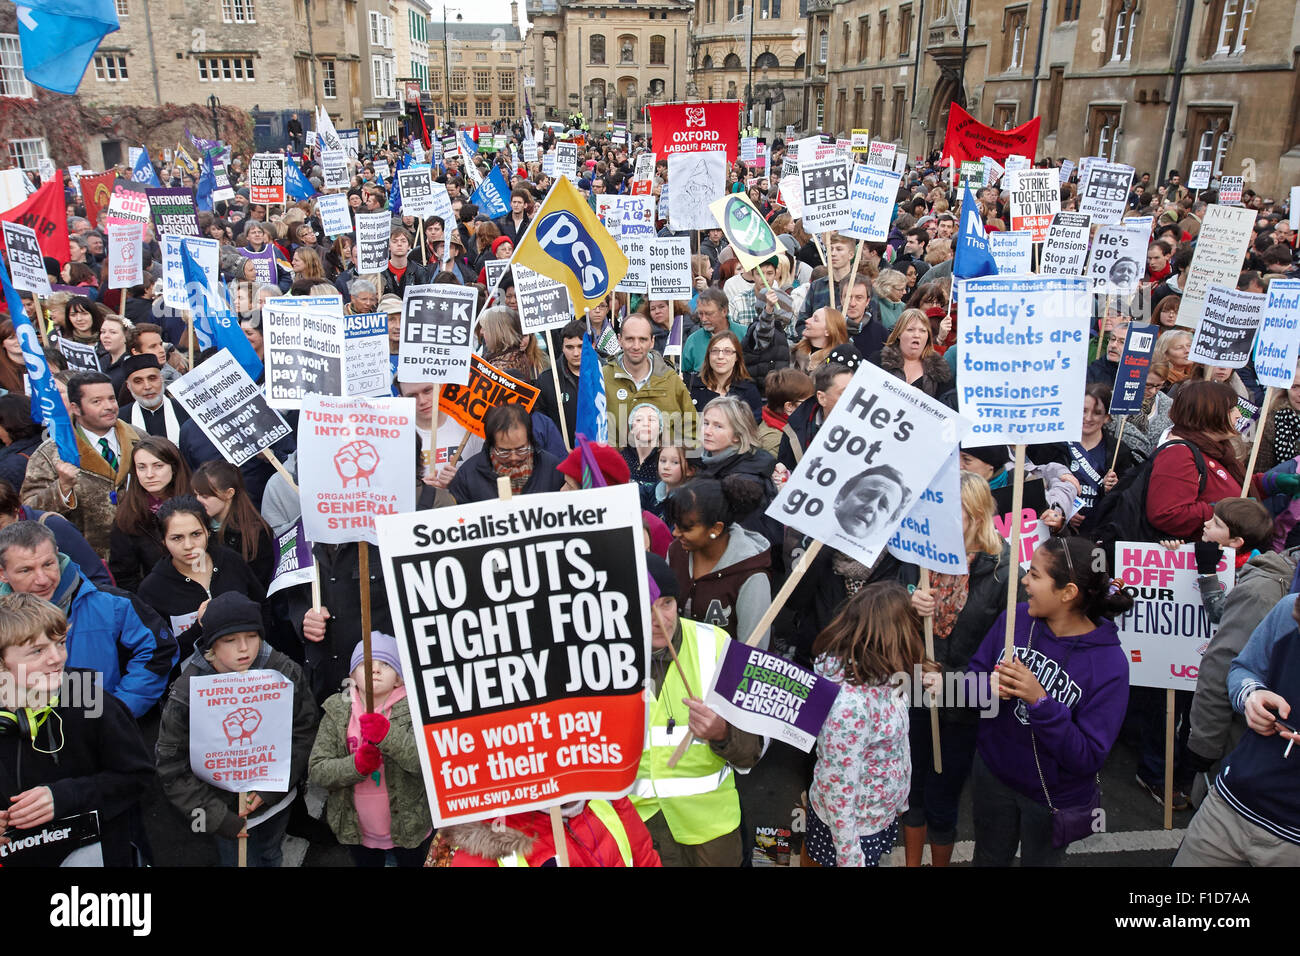 People march through central Oxford in support of the widespread n30 public sector union strike over pension rights Stock Photo